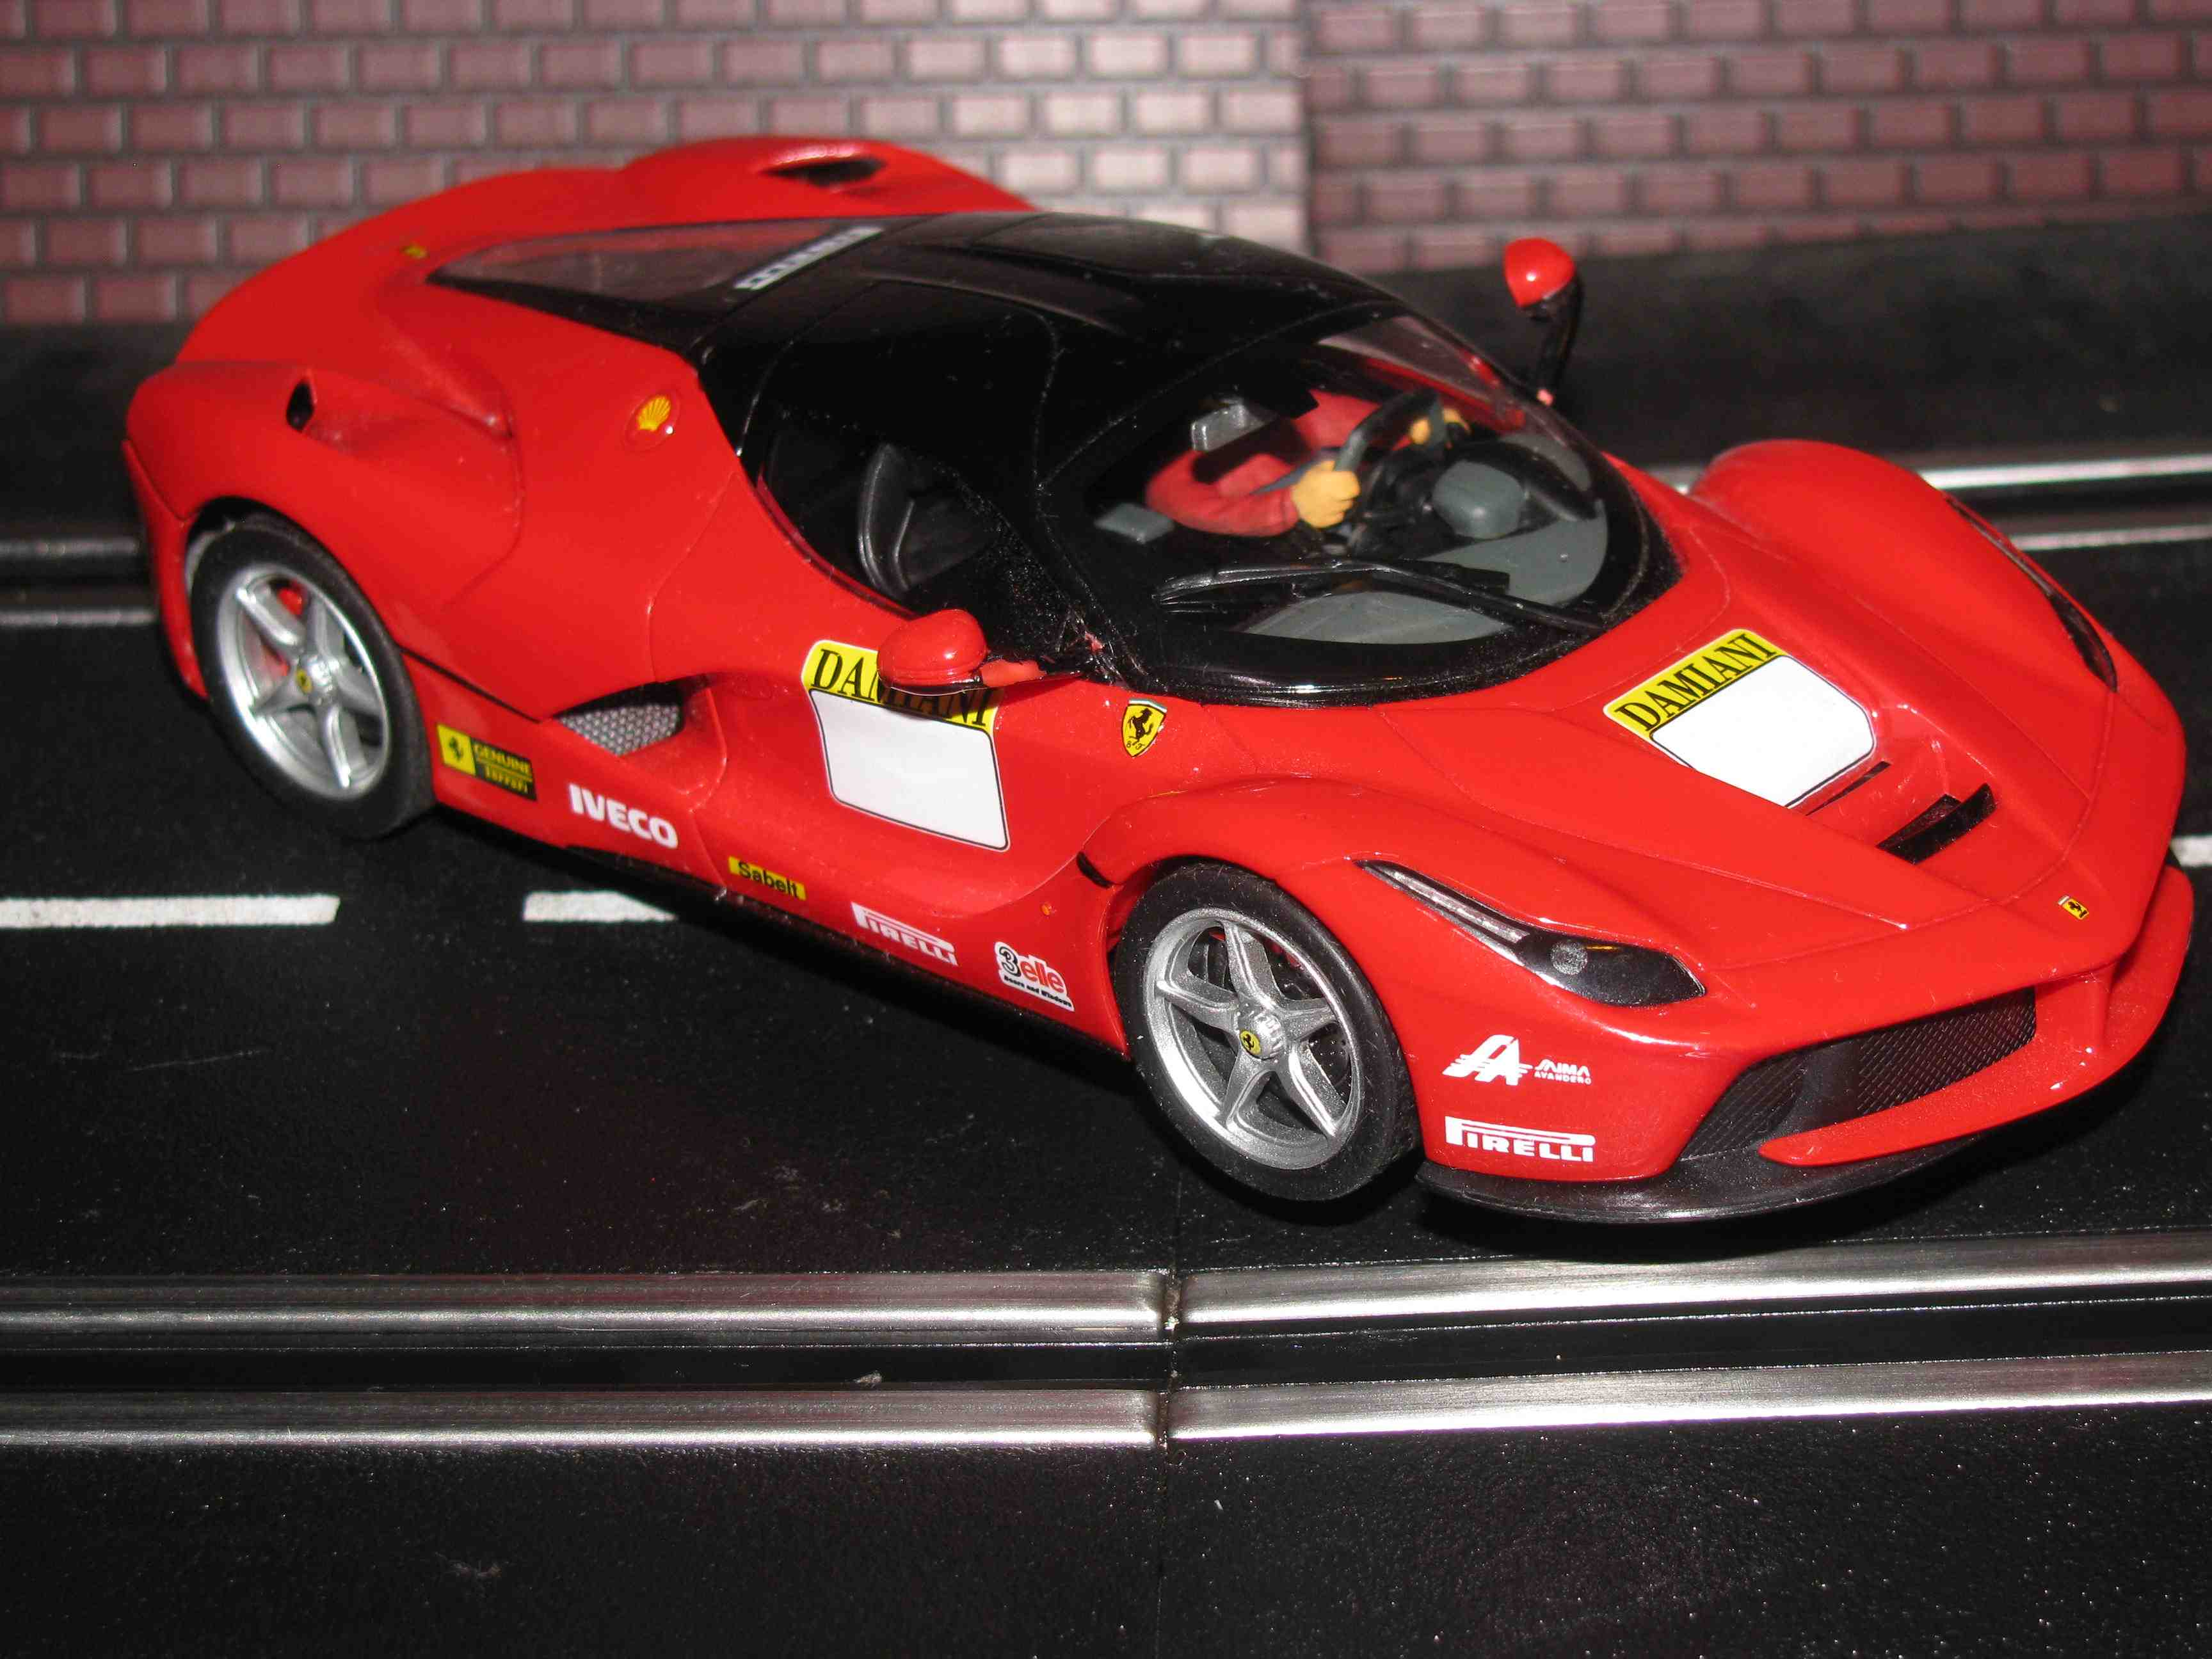 *SOLD* Carrera Ferrari LaFerrari GT Class Racer Slot Car 1/32 Scale